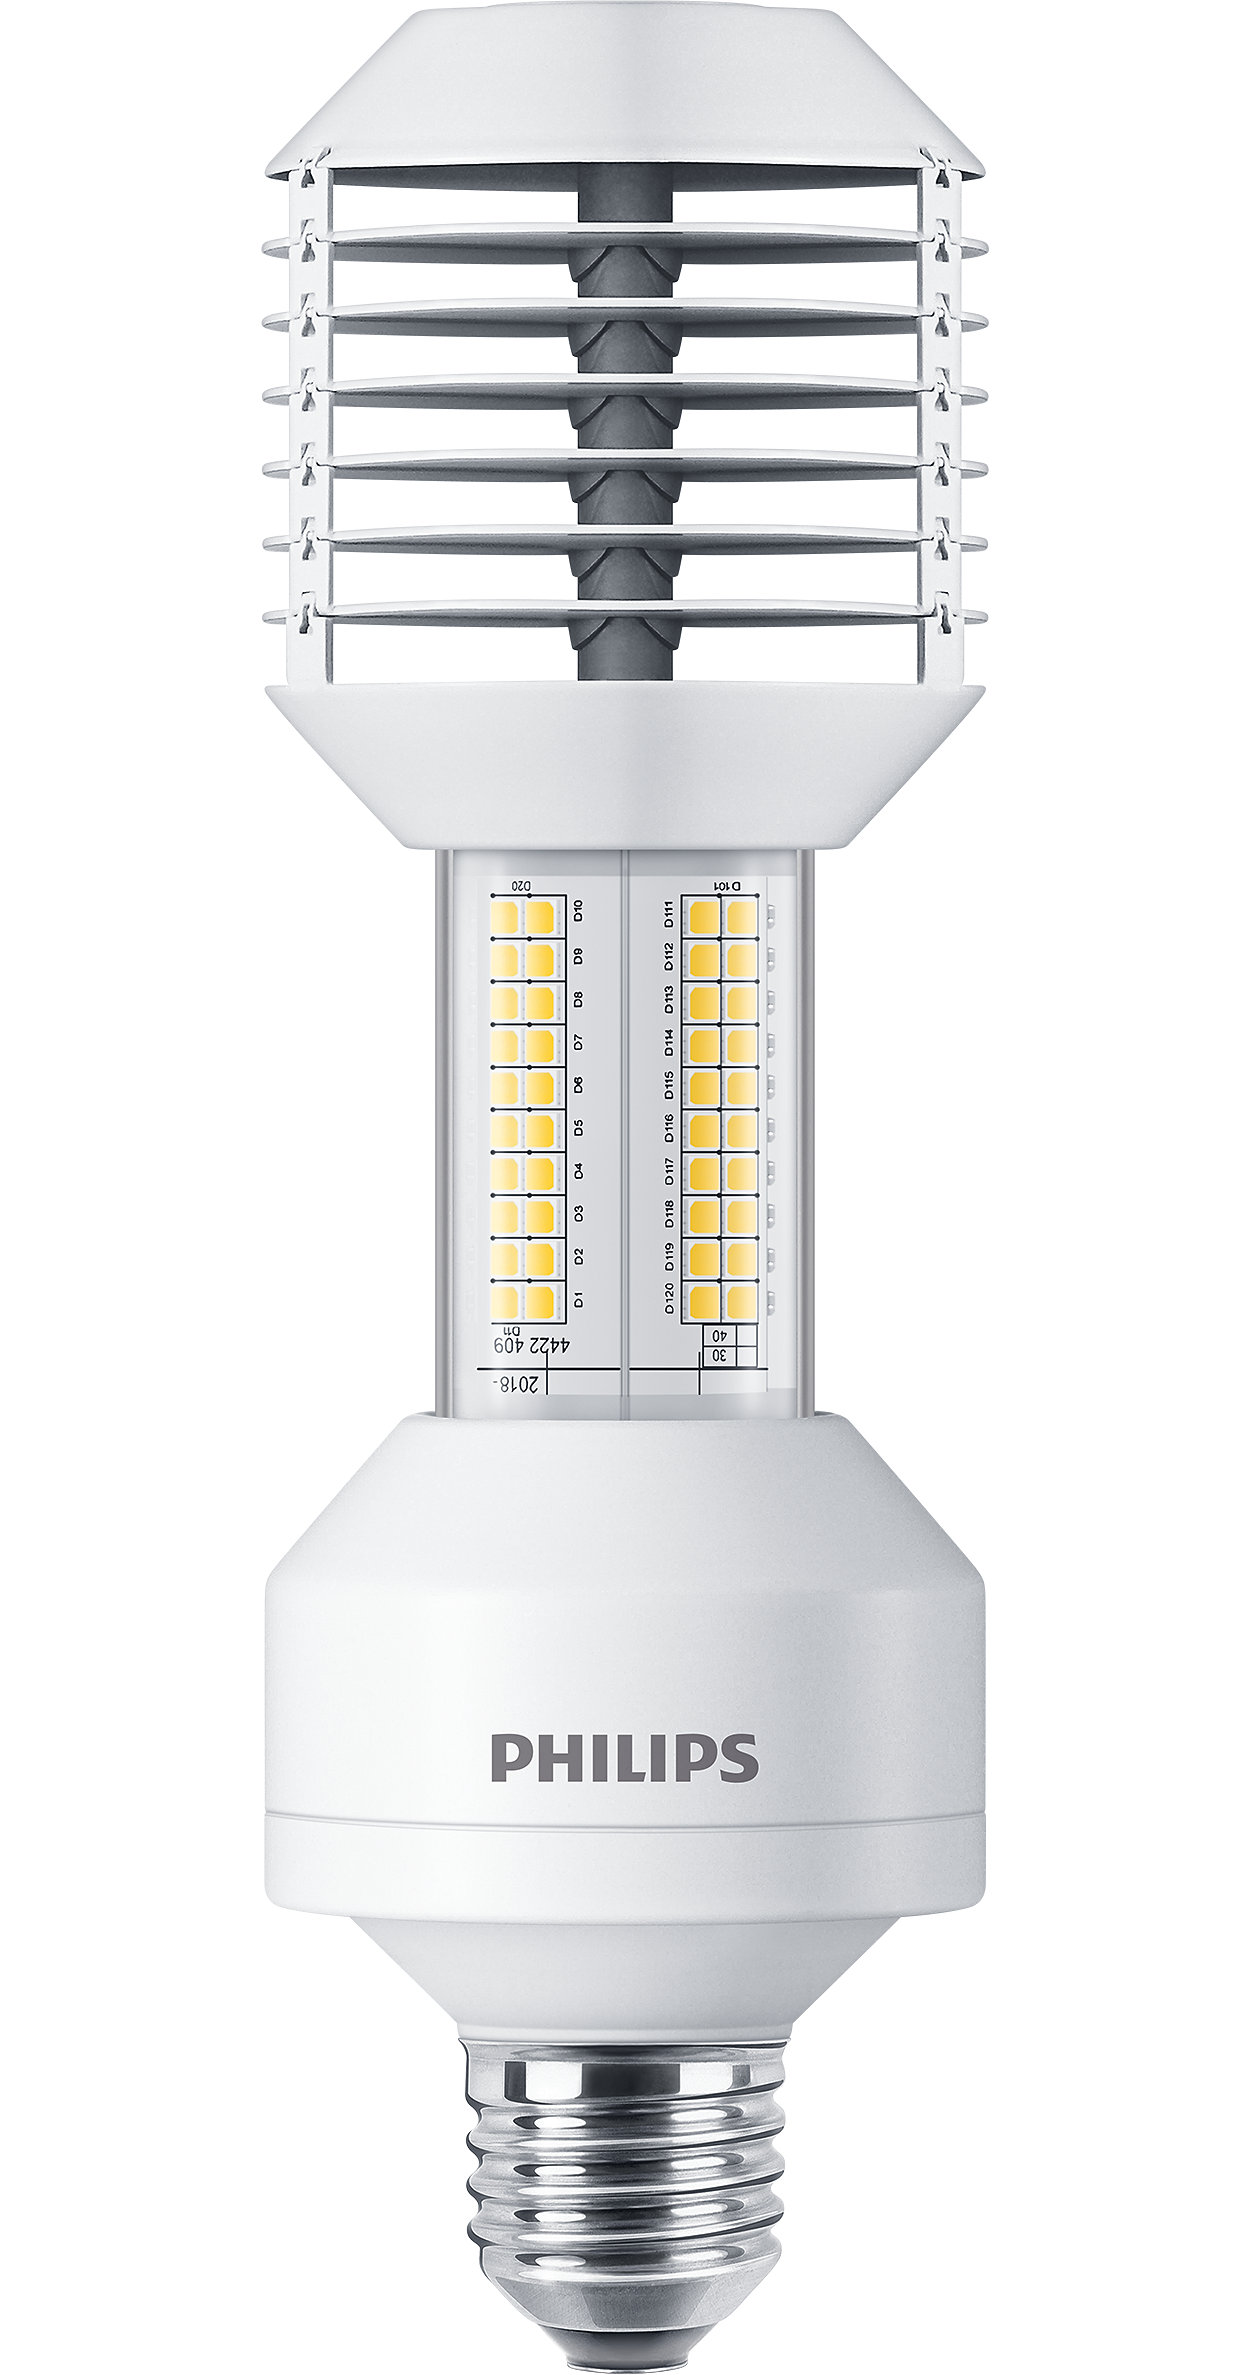 The best LED solution for High-Intensity Discharge (HID) lamp replacement